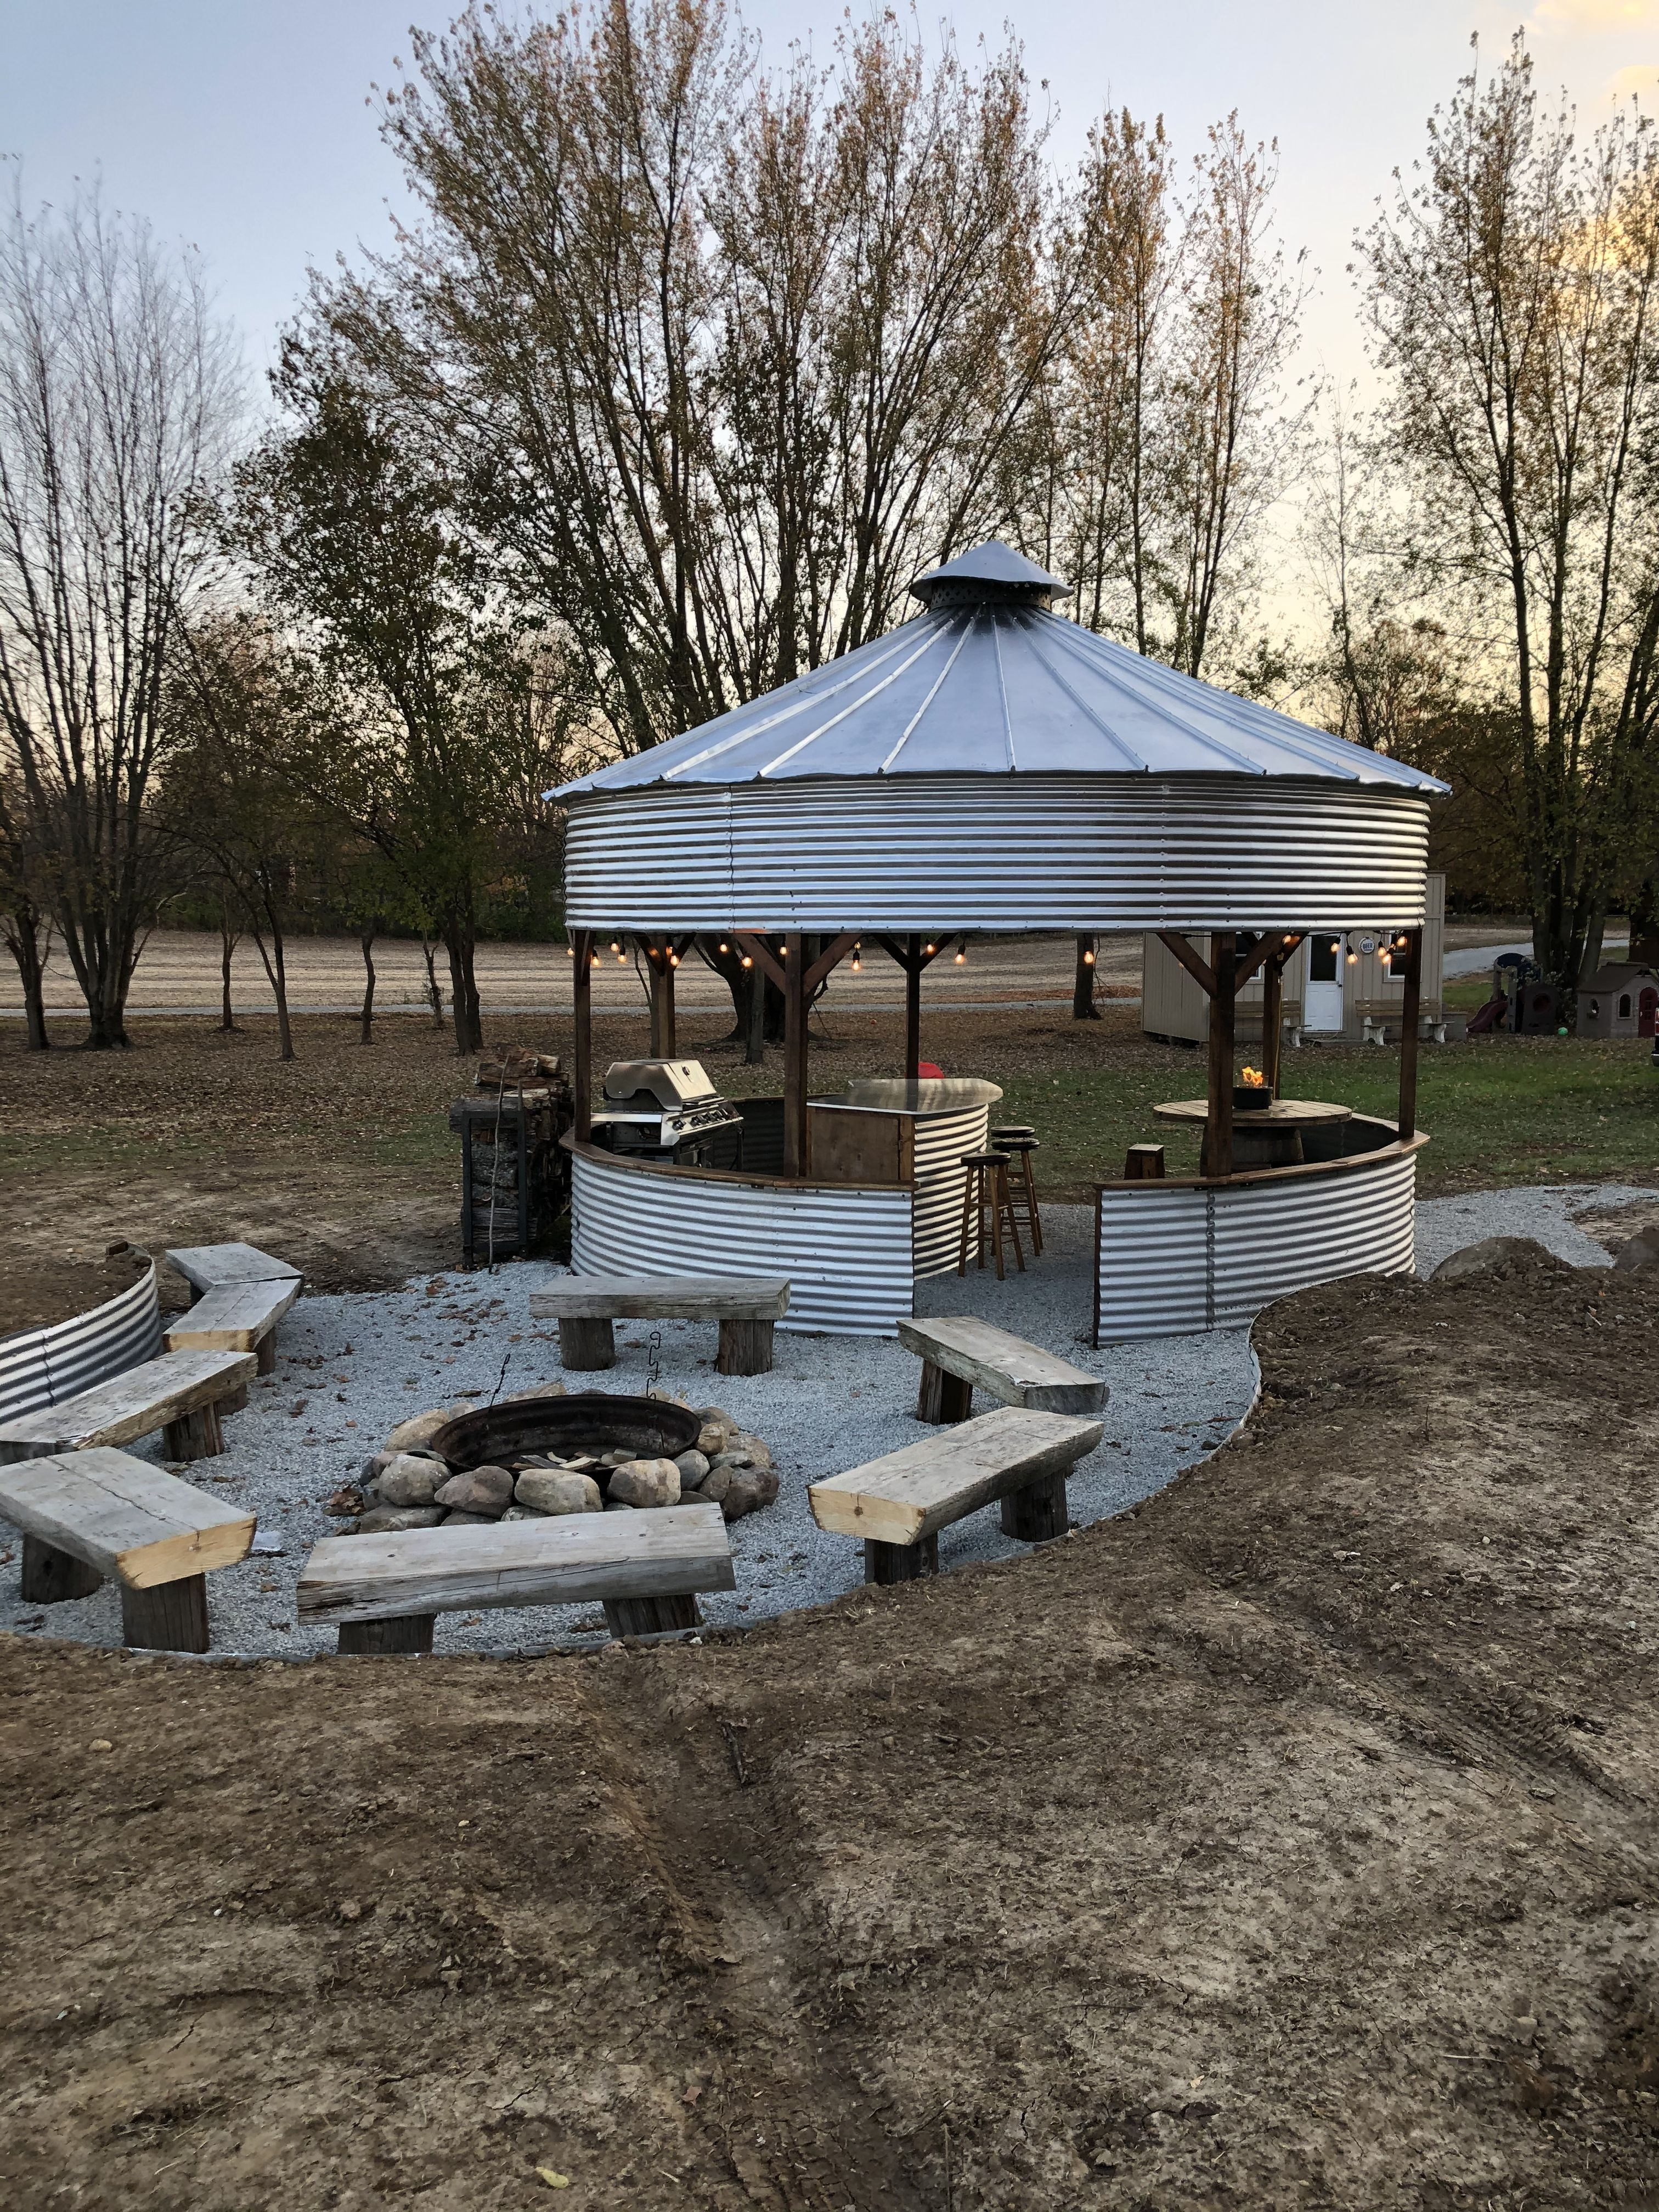 Photo of Used old grain bin and extra parts to create a gazebo and fire pit area #bin #Fi…